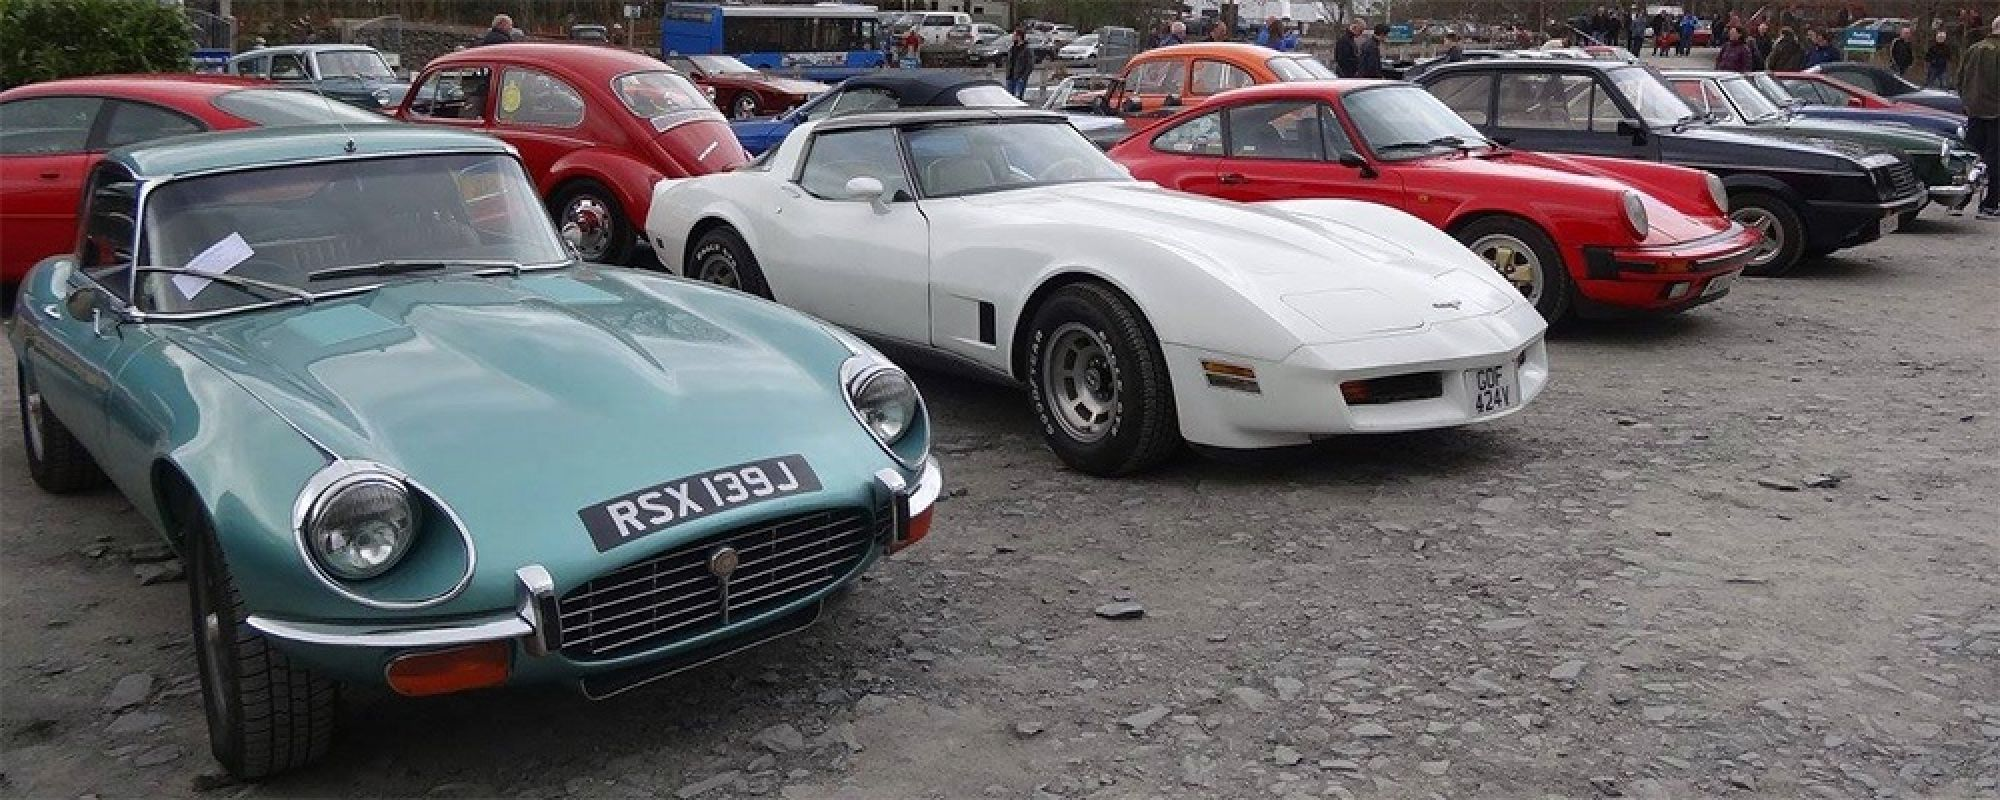 Classic Drive and Ride in Day - POSTPONED